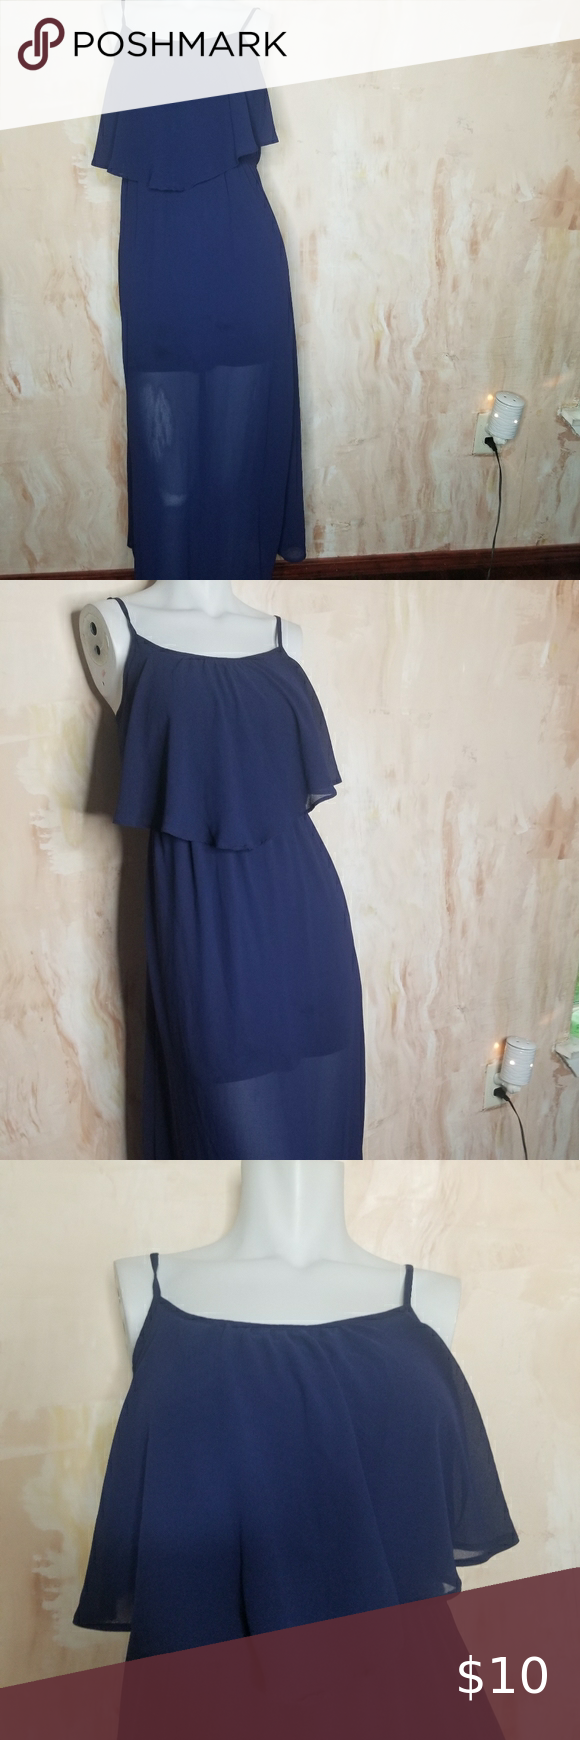 Xhilaration Maxi Dress Size Xs Adjustable Straps 16 Inches Across The Chest 10 5 Inches Across The Waist But Streches Furth Maxi Dress Dresses Clothes Design [ 1740 x 580 Pixel ]